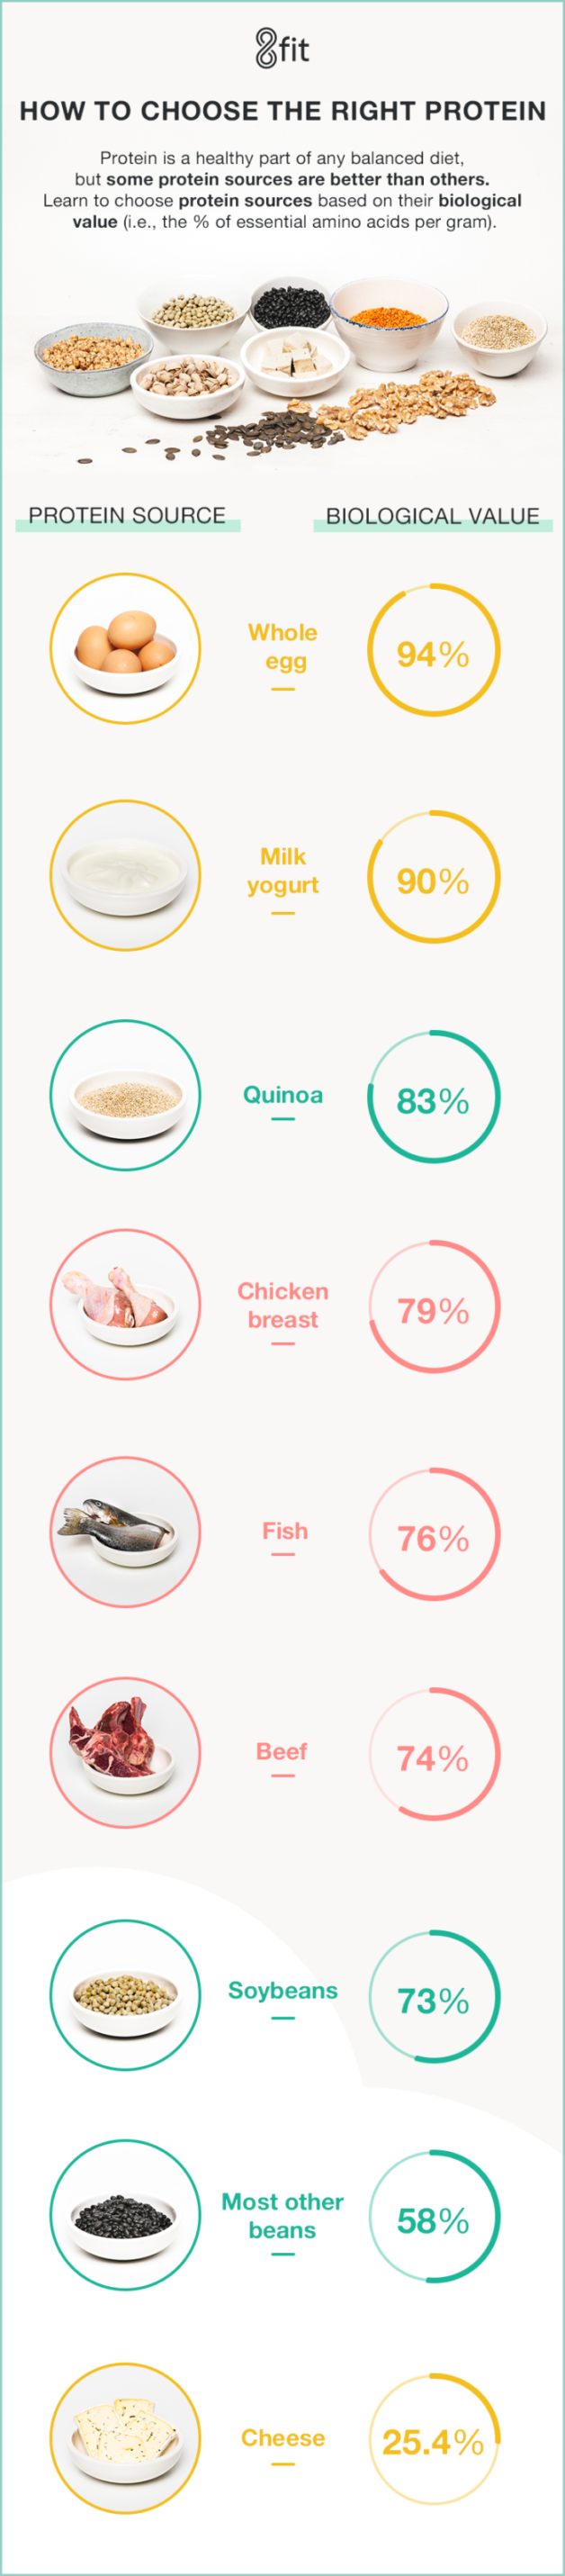 how-to-choose-your-proteins infographic protein sources